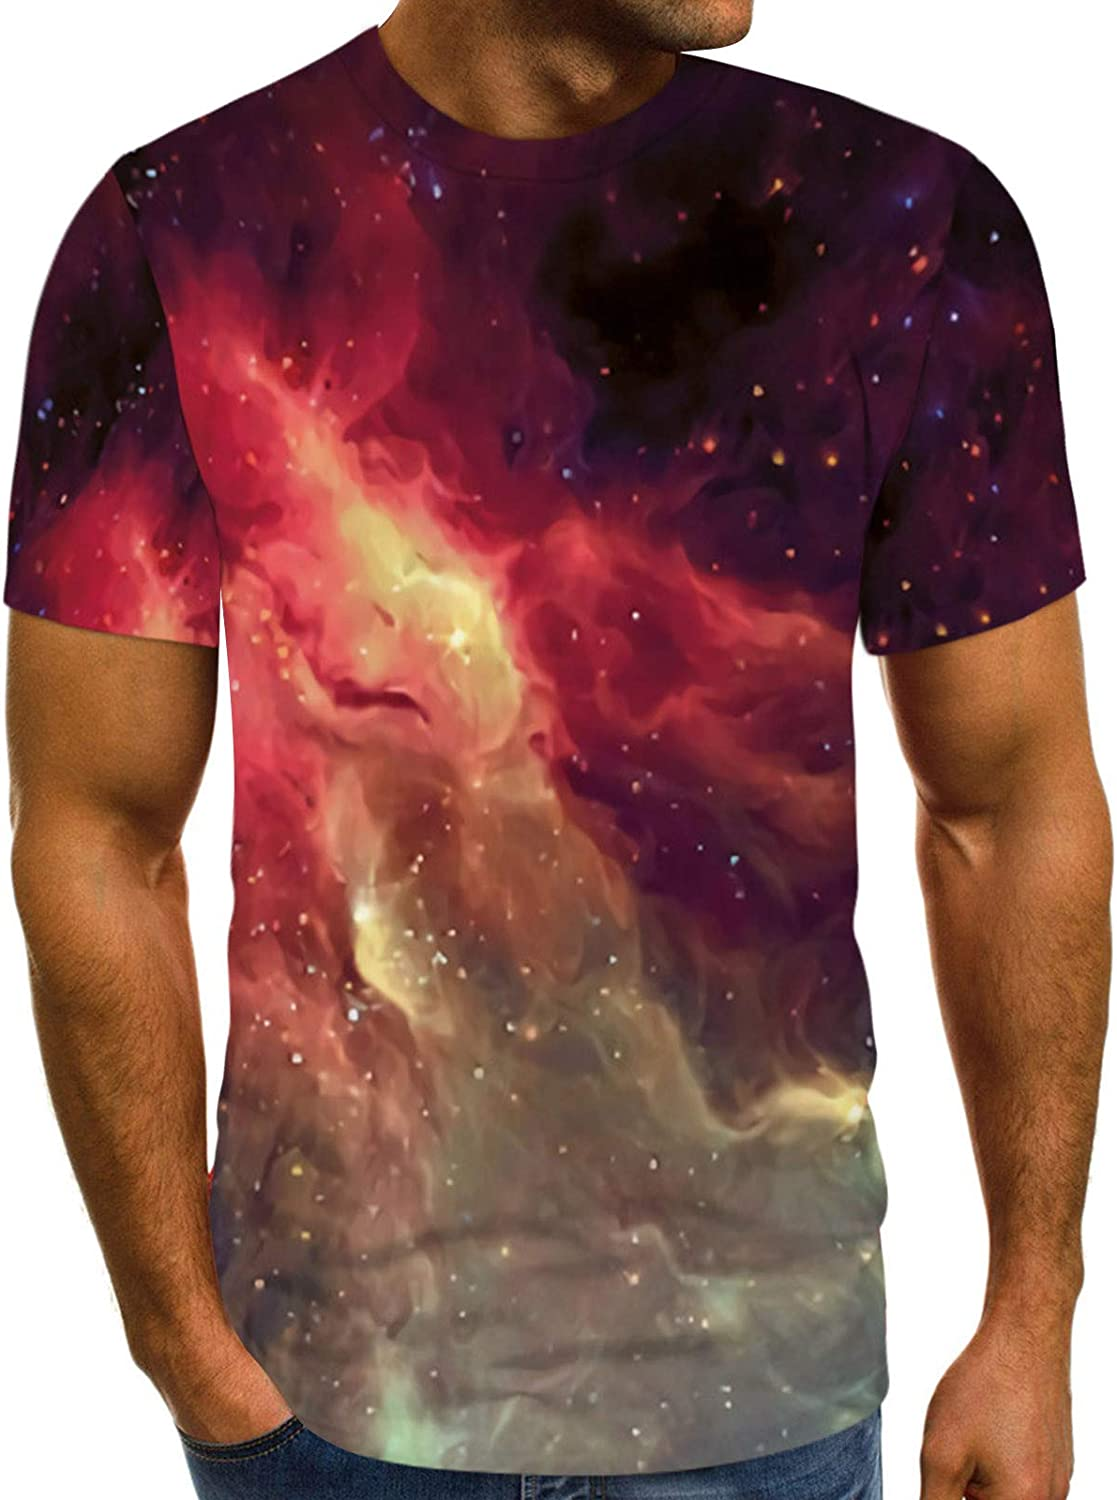 Tie Dye Space Print T-Shirts for Unisex Women Men Short Sleeve Casual Tops for Gifts Adult O Neck Tees